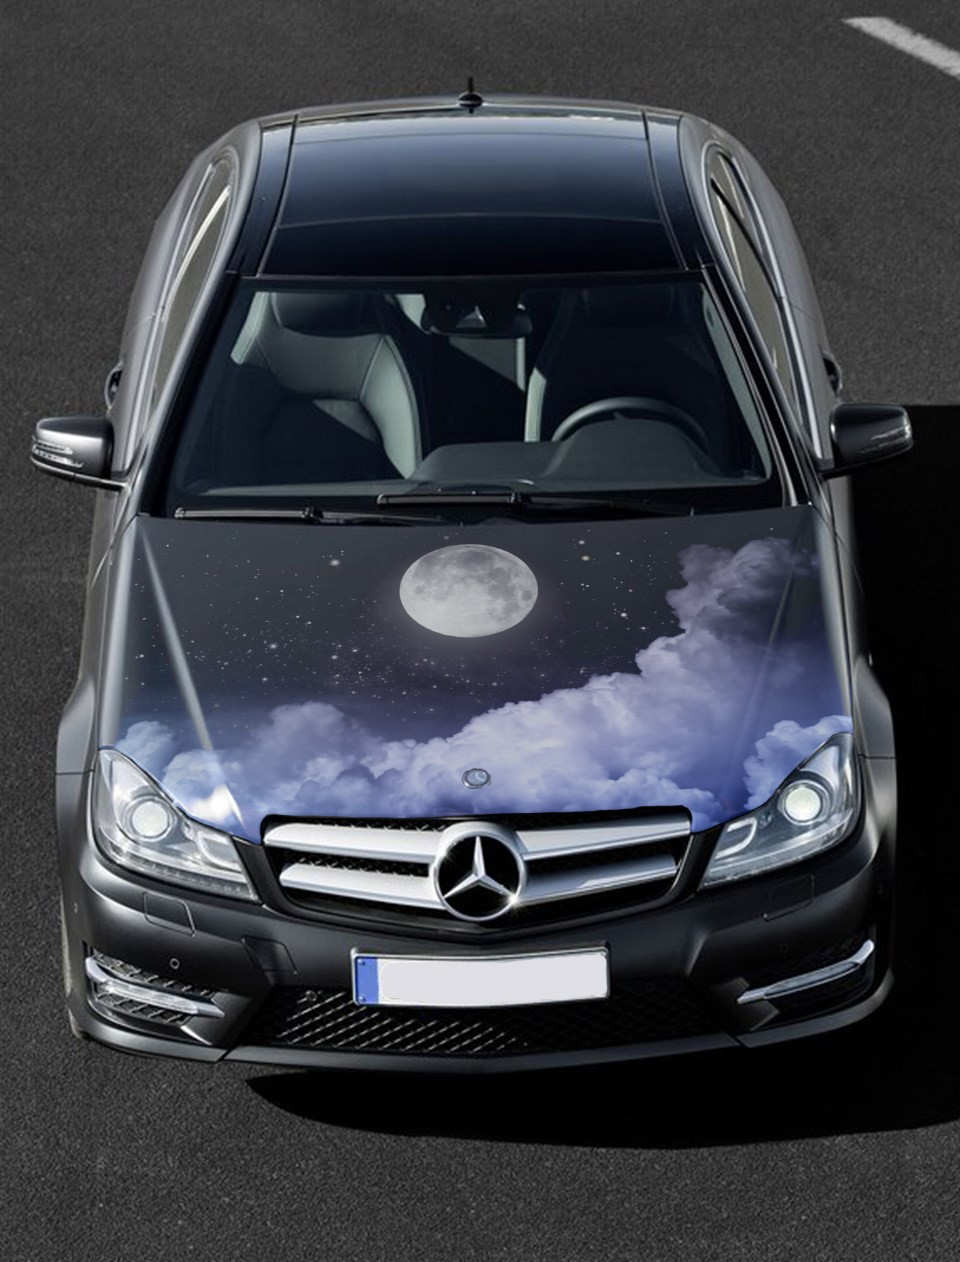 Details about vinyl car hood wrap full color graphics decal moonlight clouds custom sticker